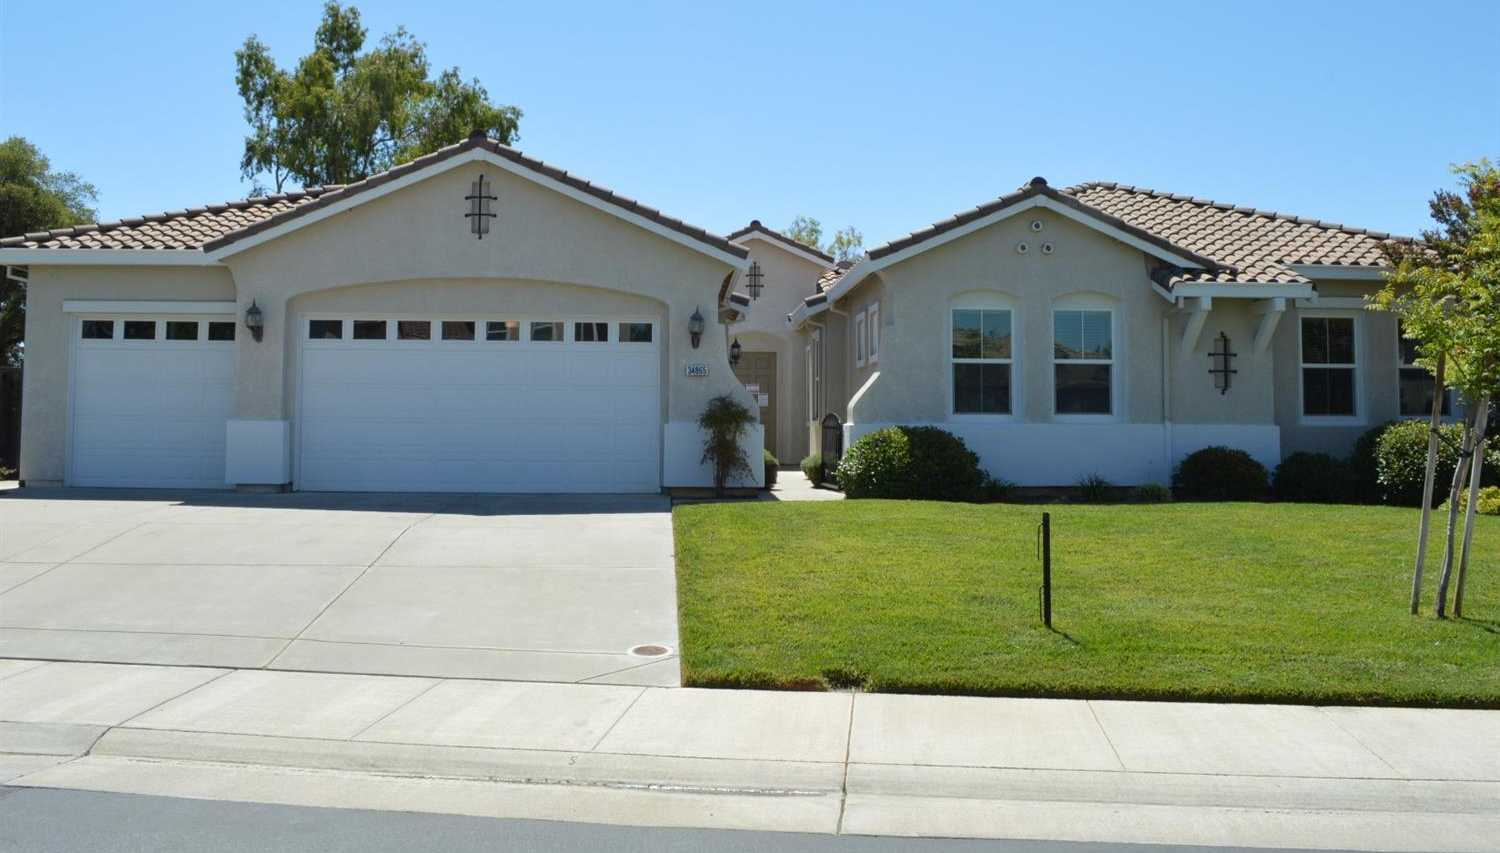 $678,800 - 4Br/3Ba -  for Sale in Woodland